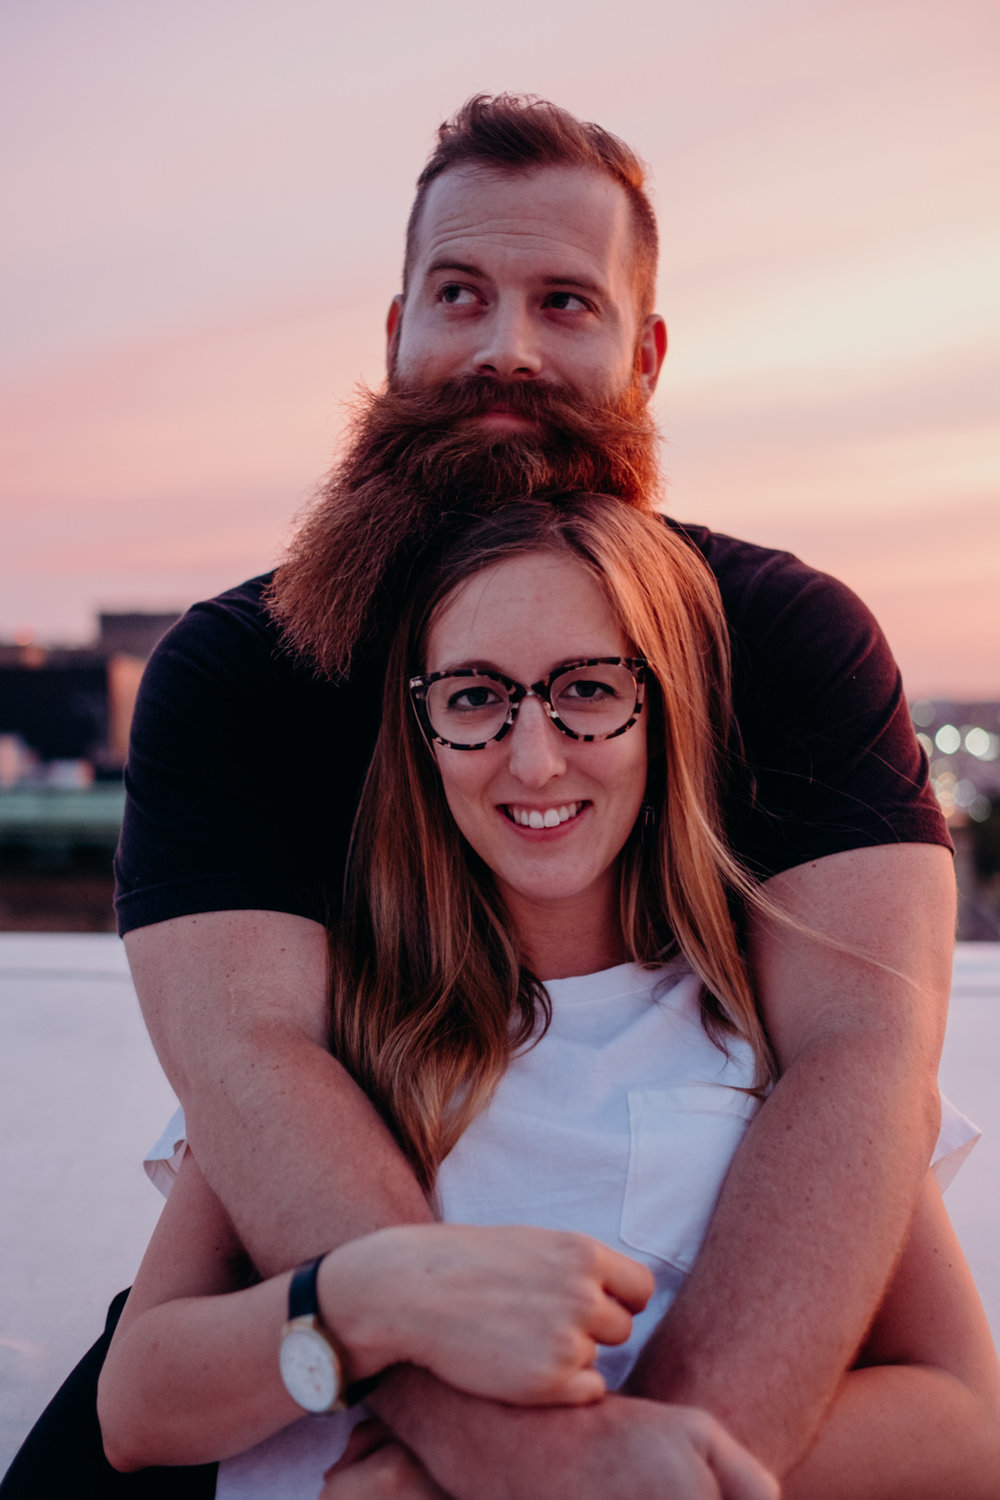 20180612_Kansas City Couple Portraits - Ali Happer_39.jpg